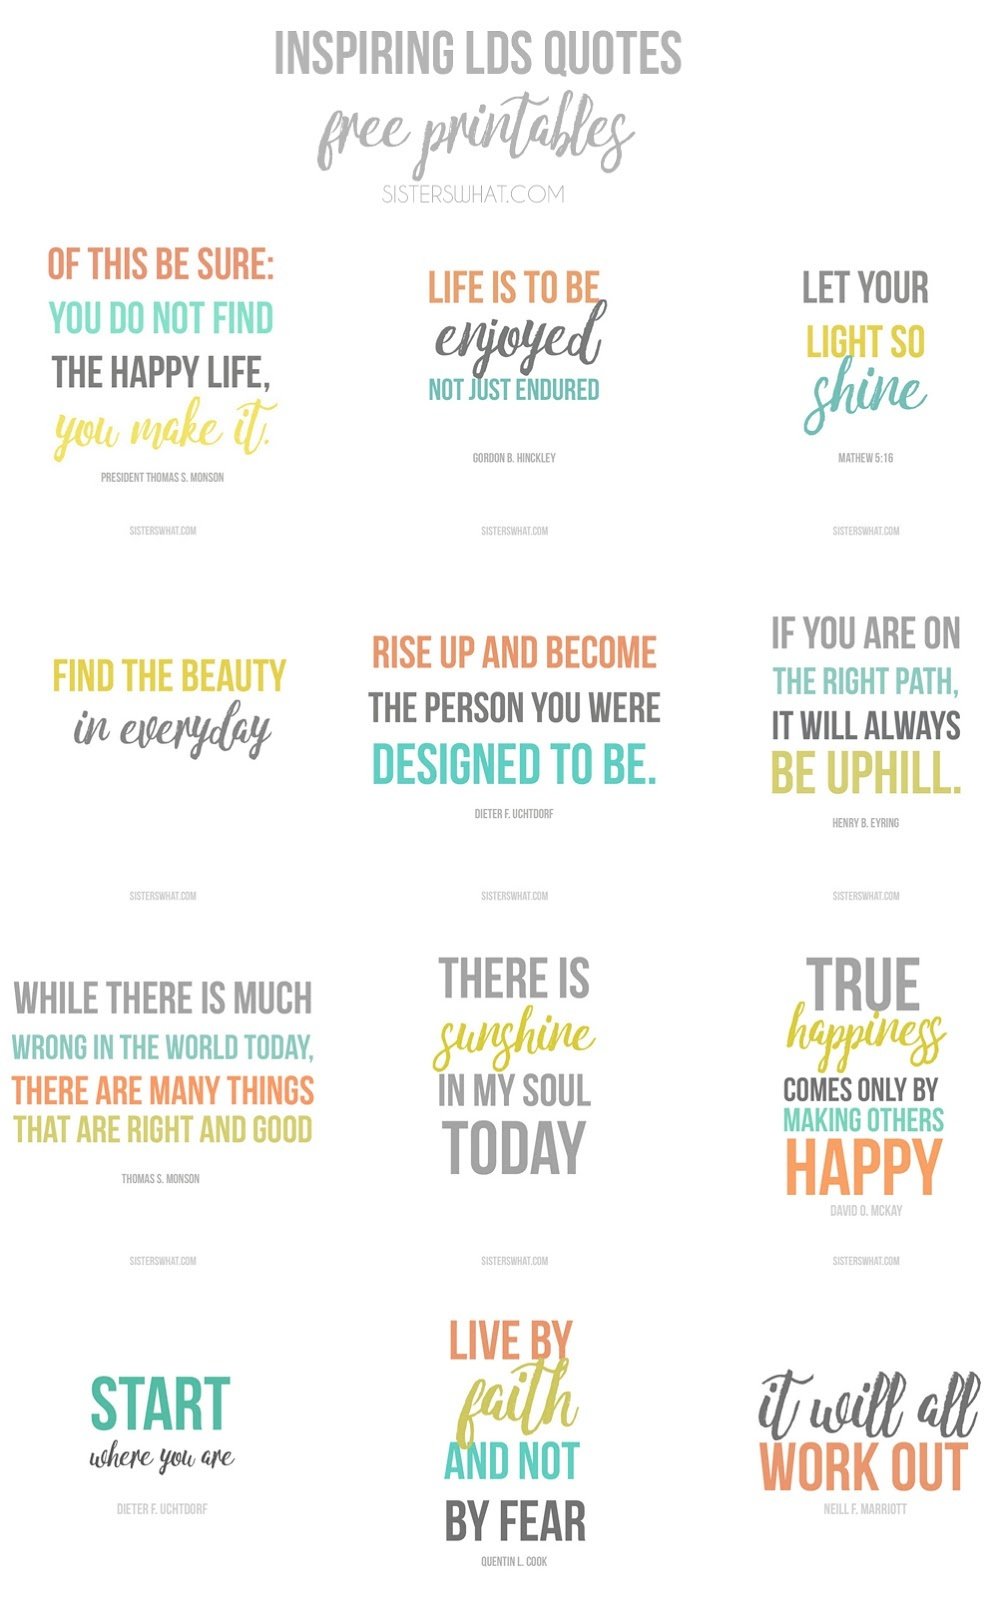 Inspirational Quotes Free Printables - Sisters, What! - Free Printable Inspirational Quotes